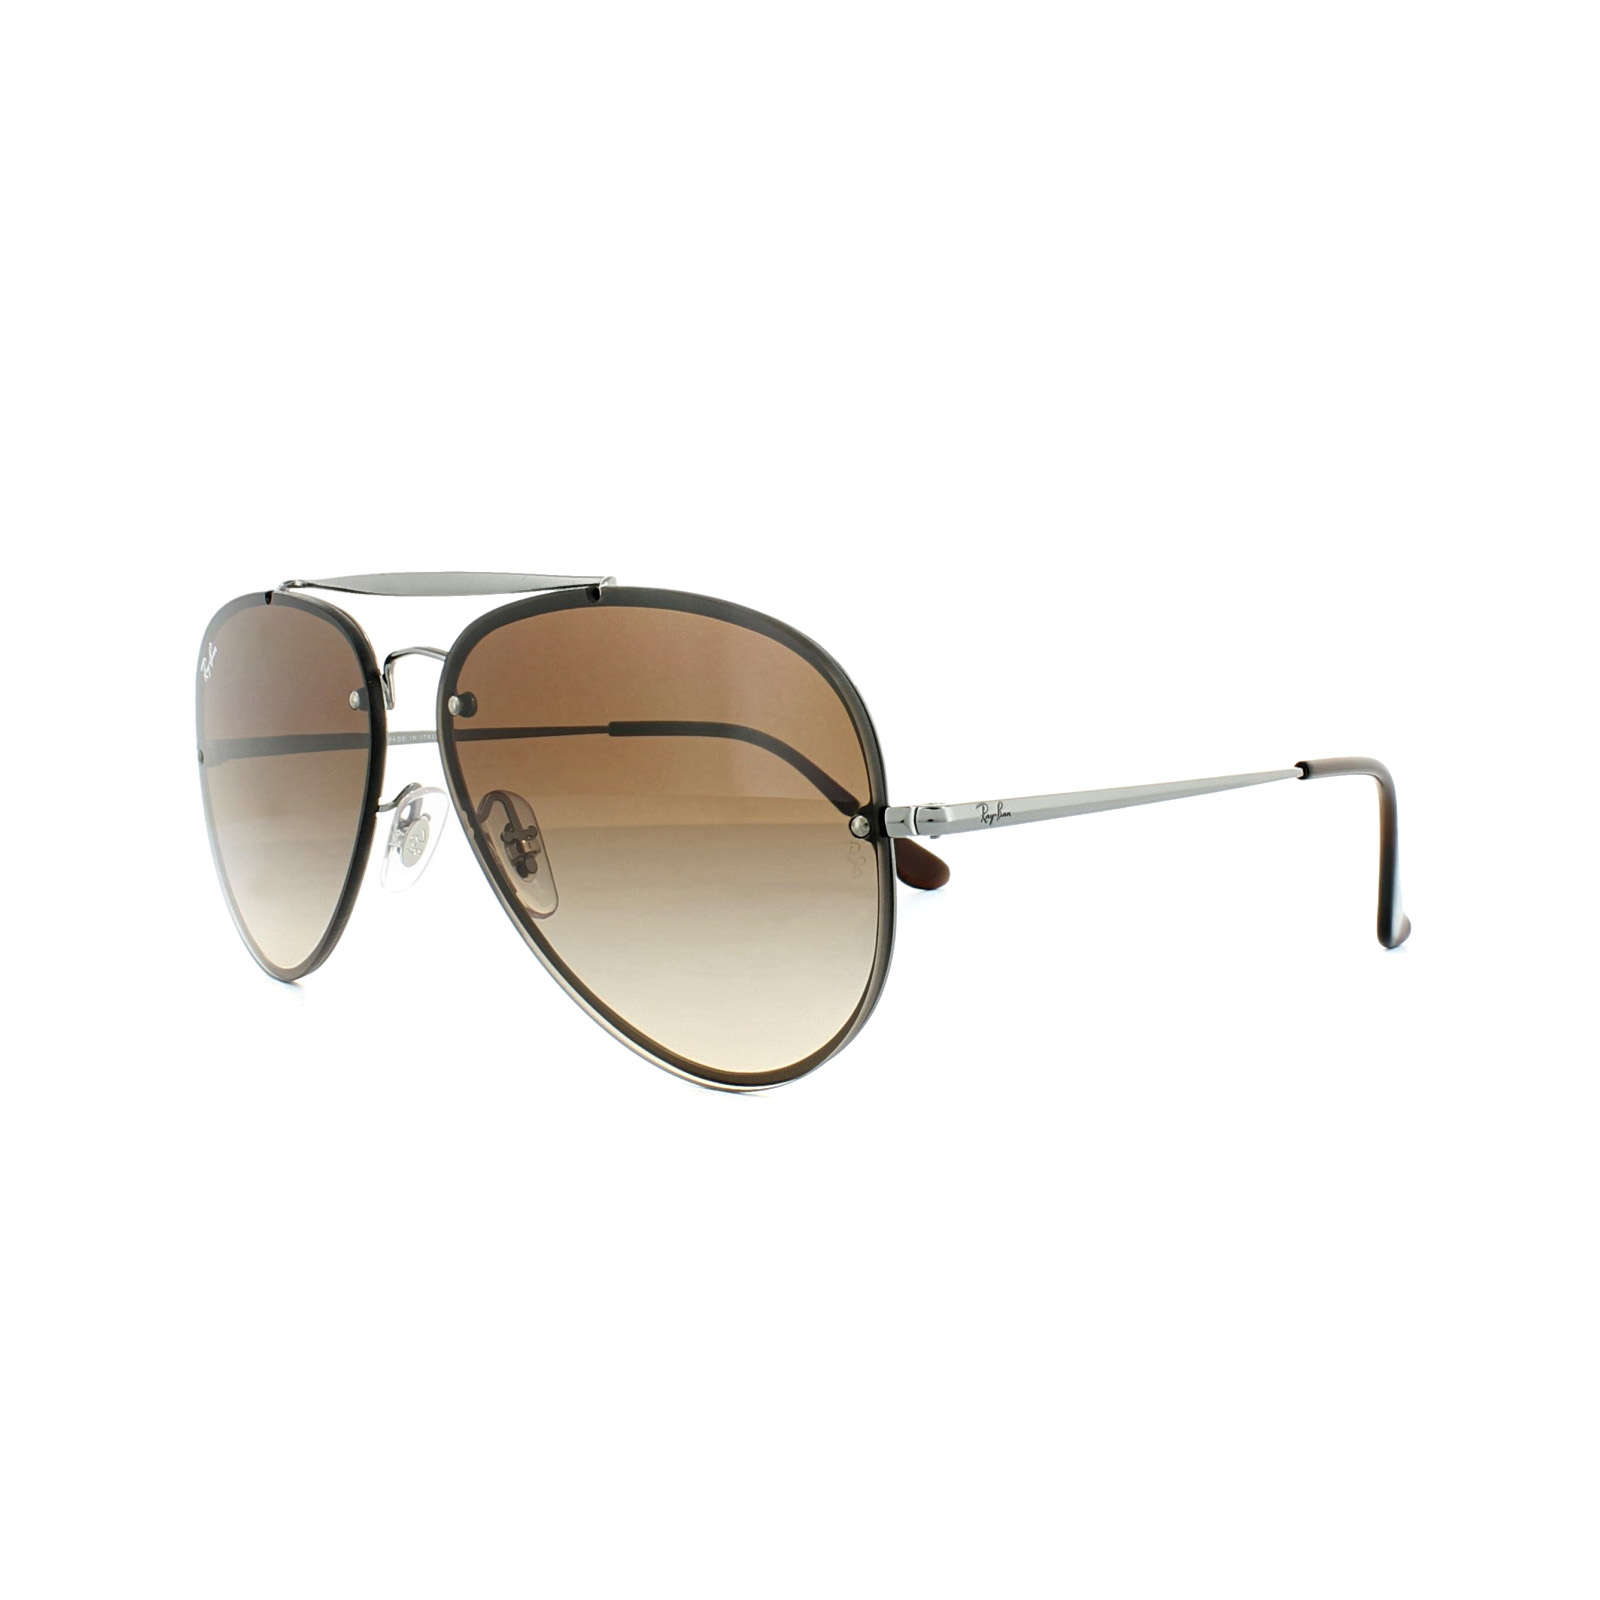 f91e21d1ee Details about Ray-Ban Sunglasses Blaze Aviator RB3584N 004 13 Gunmetal  Brown Gradient 58mm